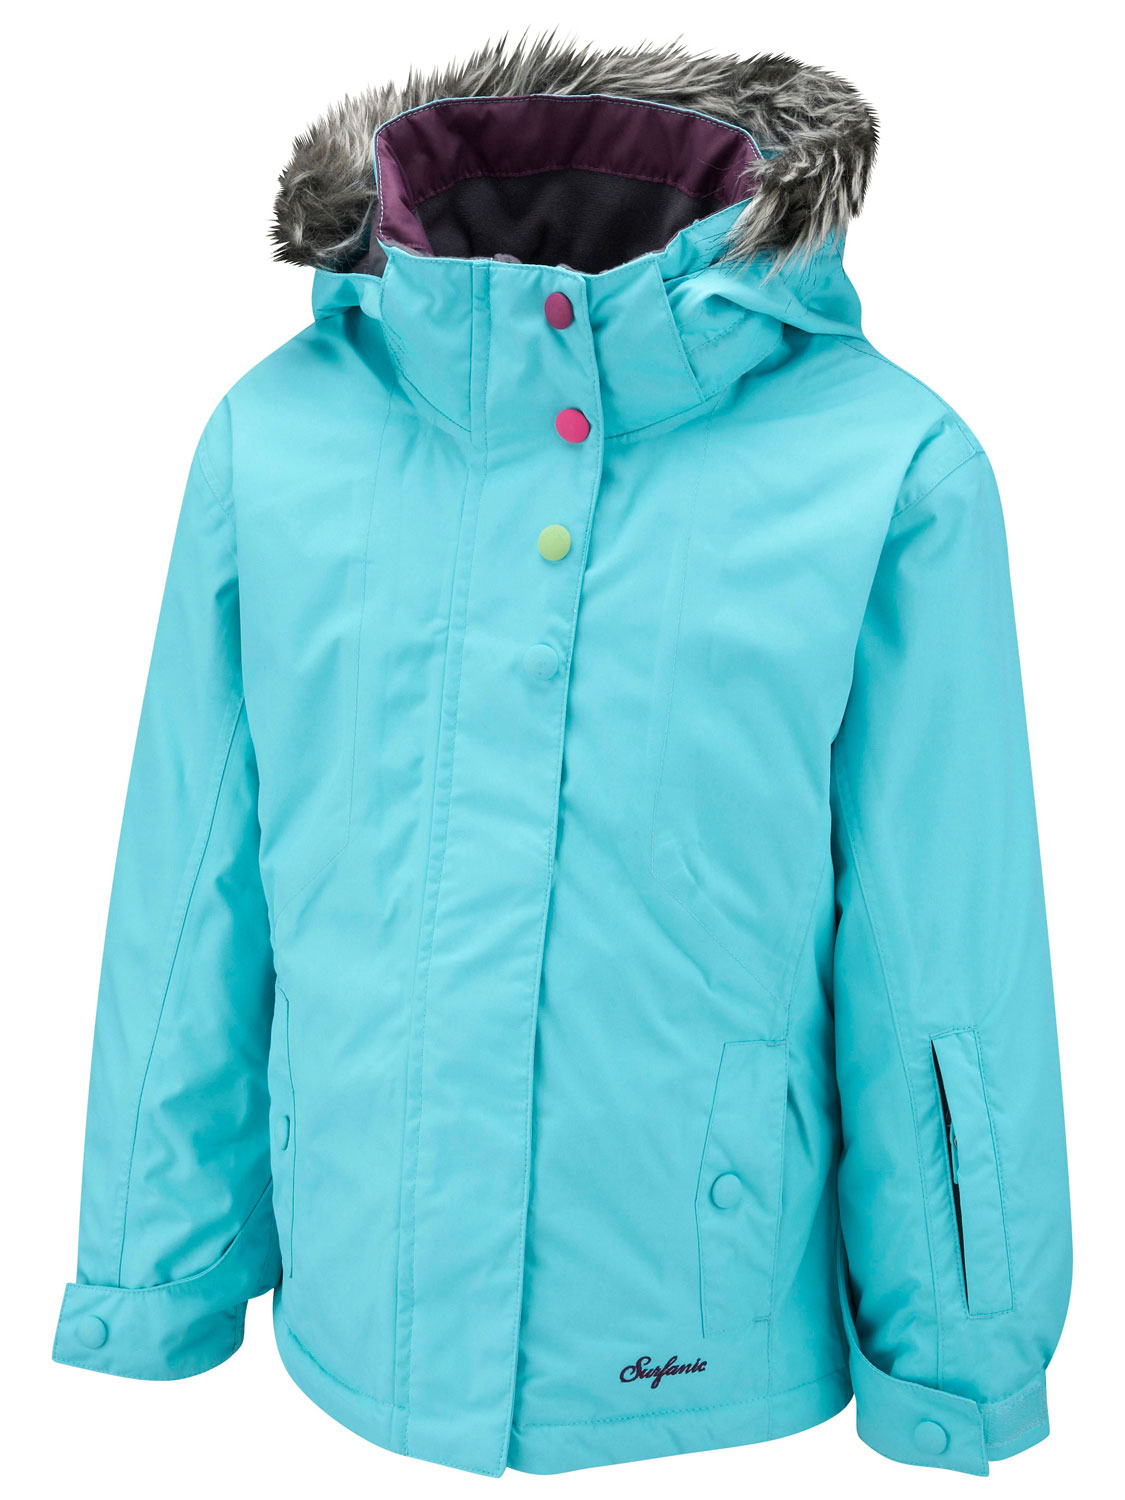 Shop for a variety of men's winter coats, ski jackets, and snowboarding parkas online. Stay warm with Columbia's line of winter jackets.